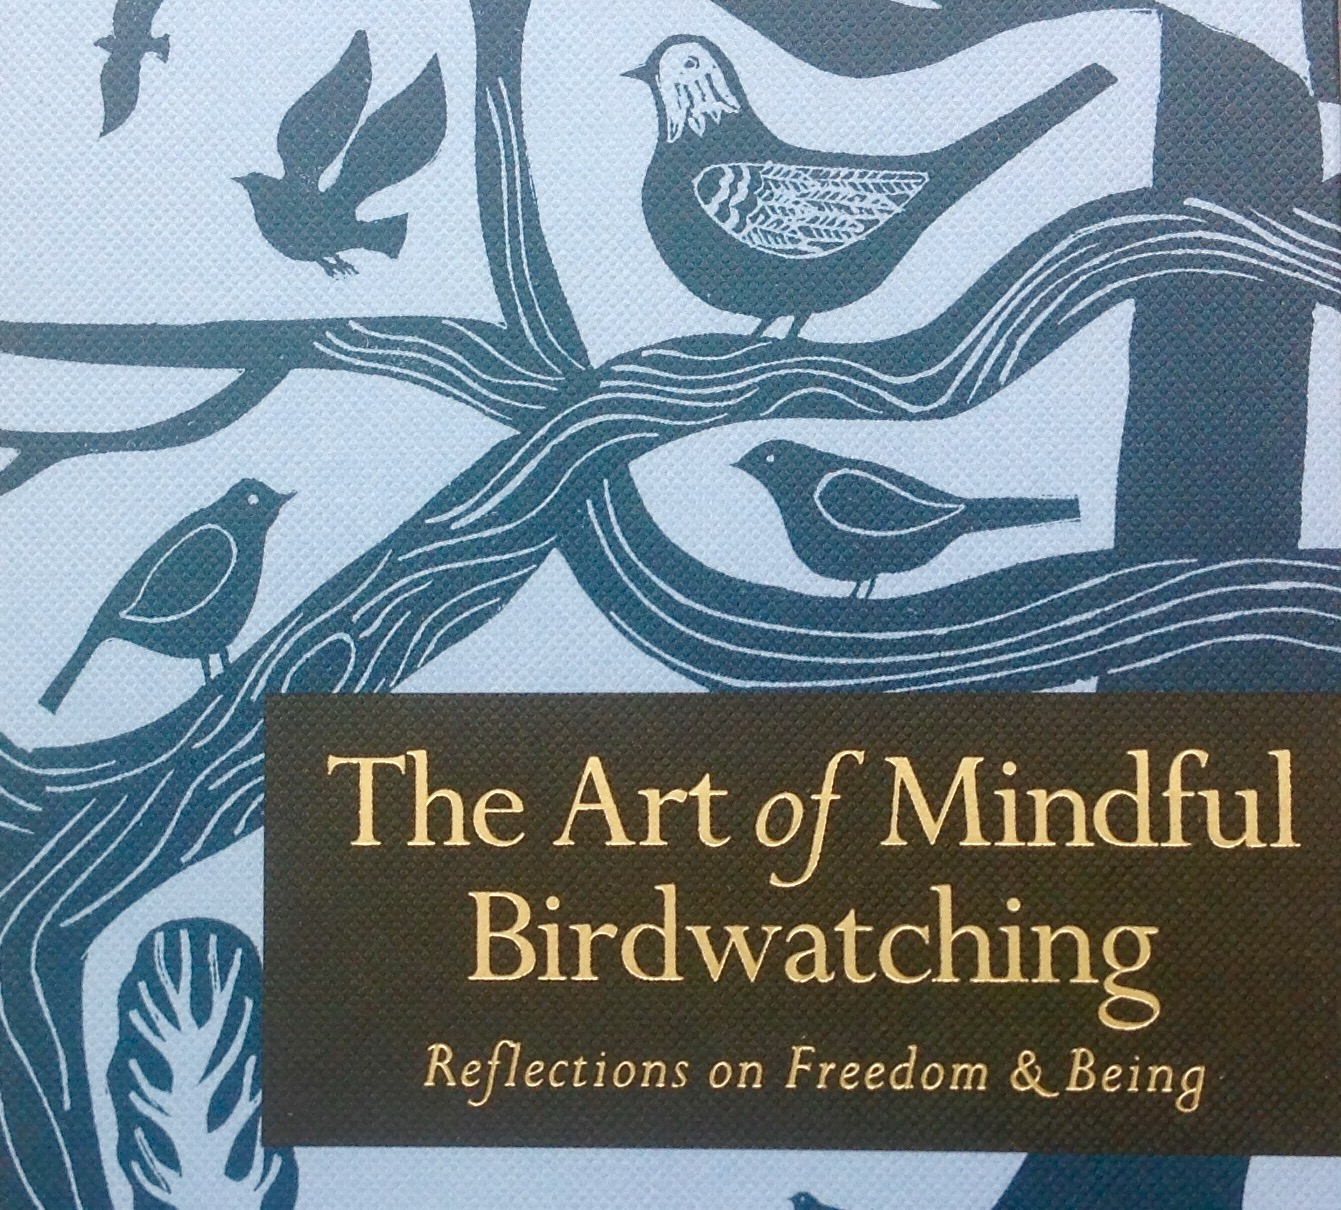 A Guide To The Art Of Mindful Birdwatching